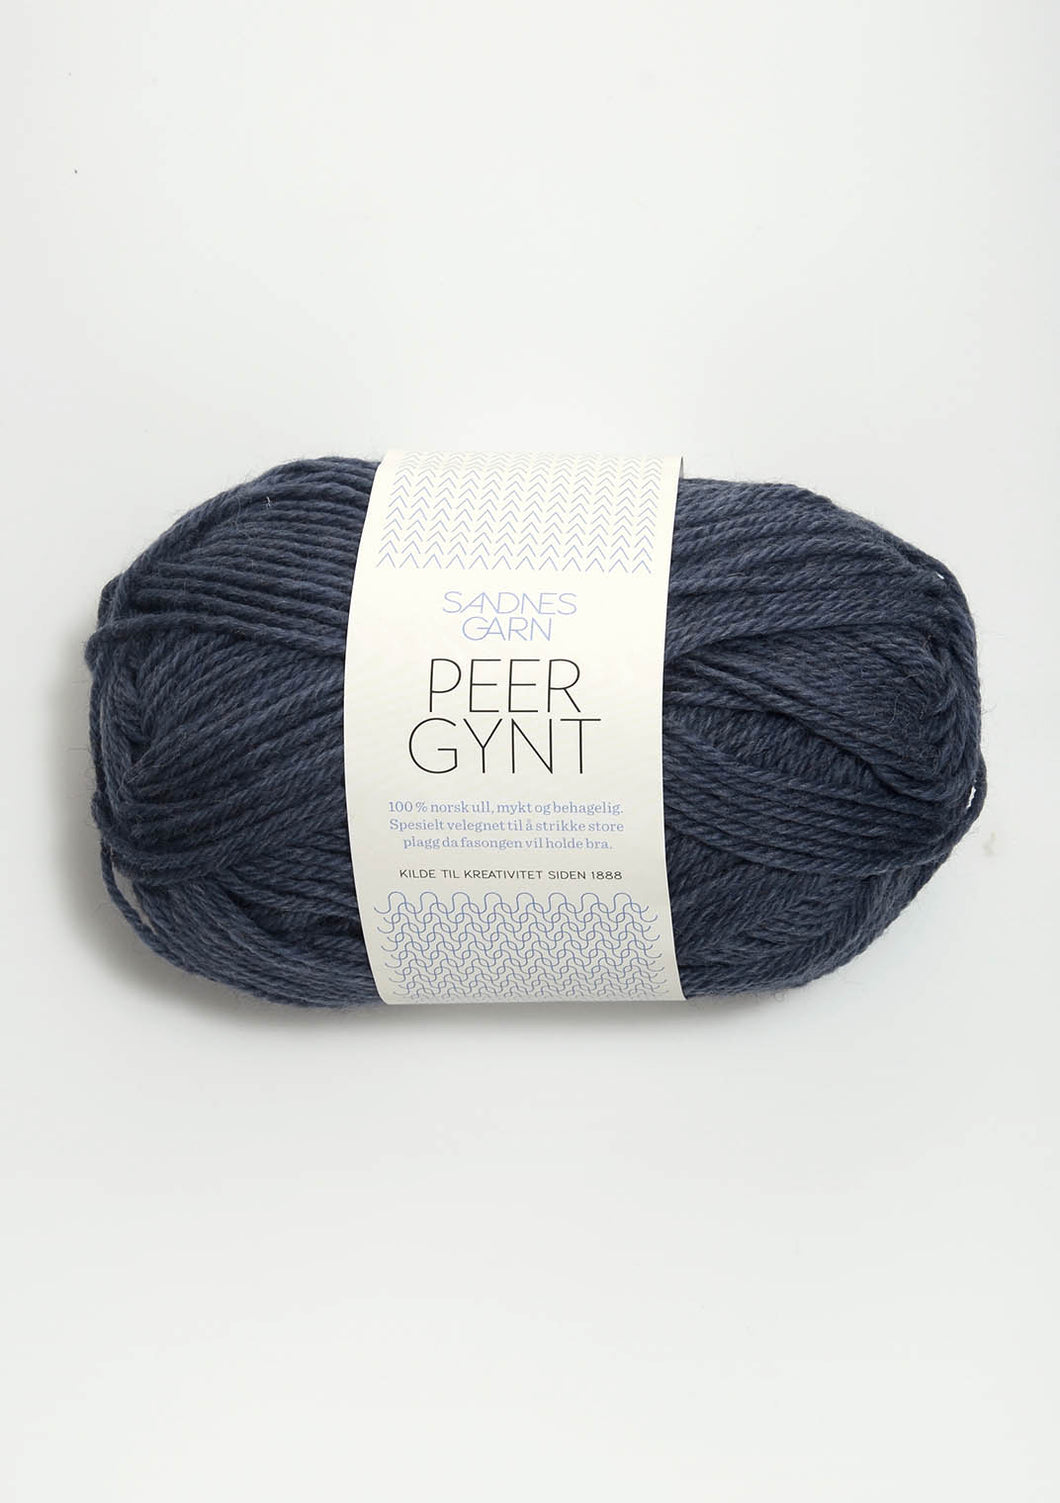 Sandnes Peer Gynt  - Dark Denim 6072